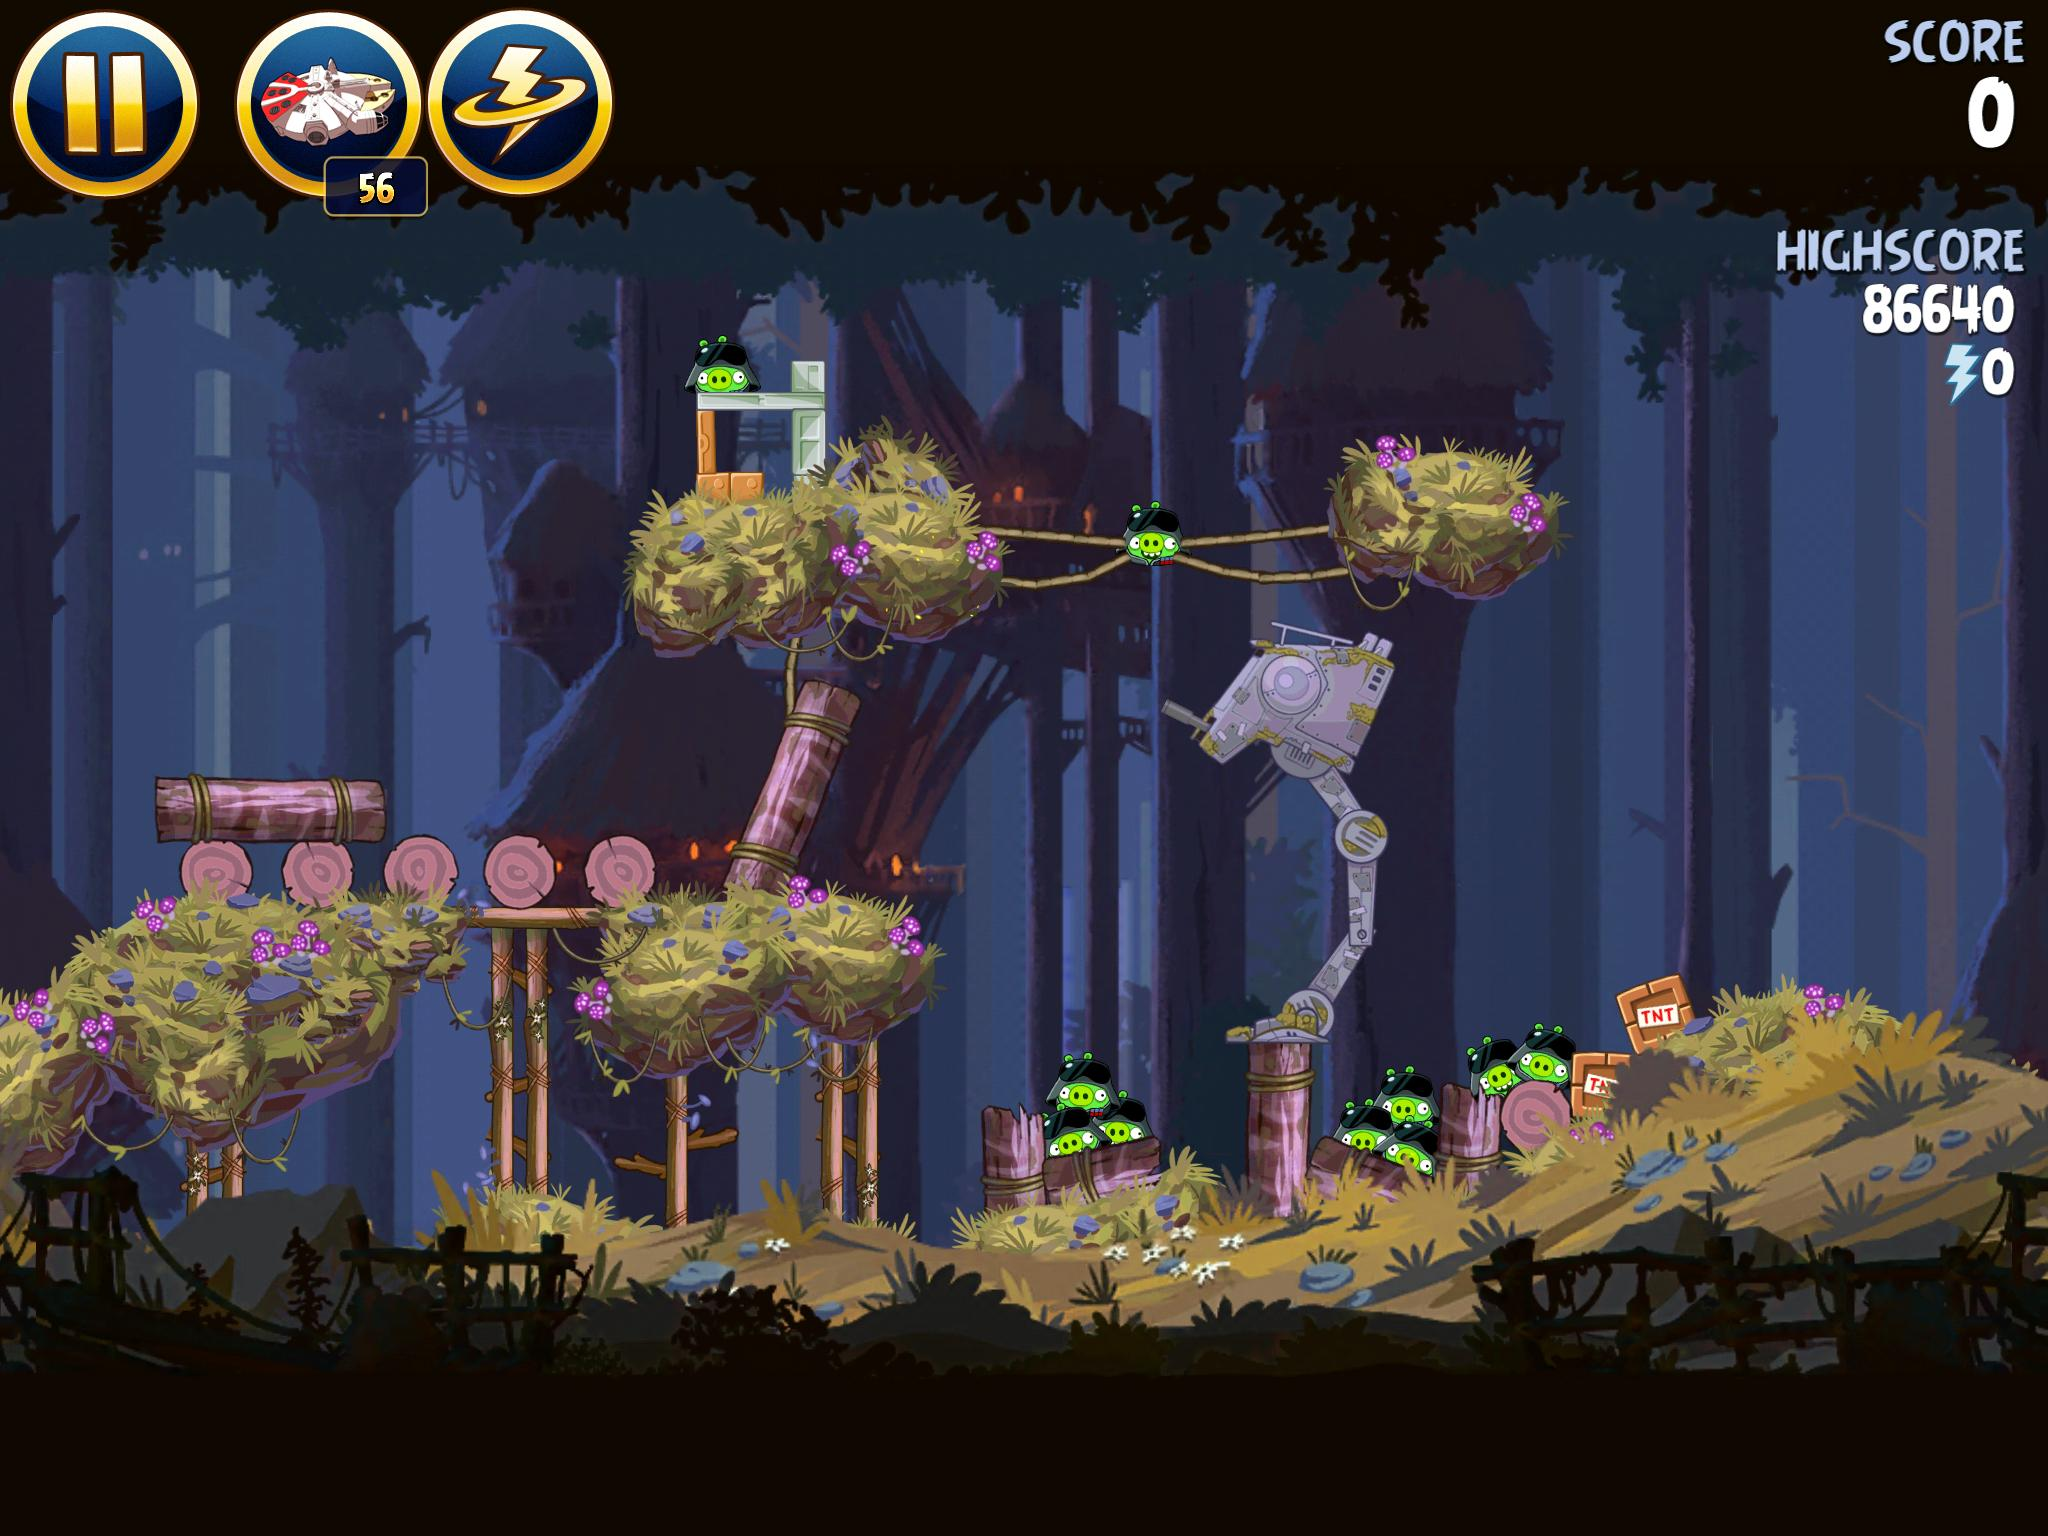 Moon of Endor 5-15 (Angry Birds Star Wars)